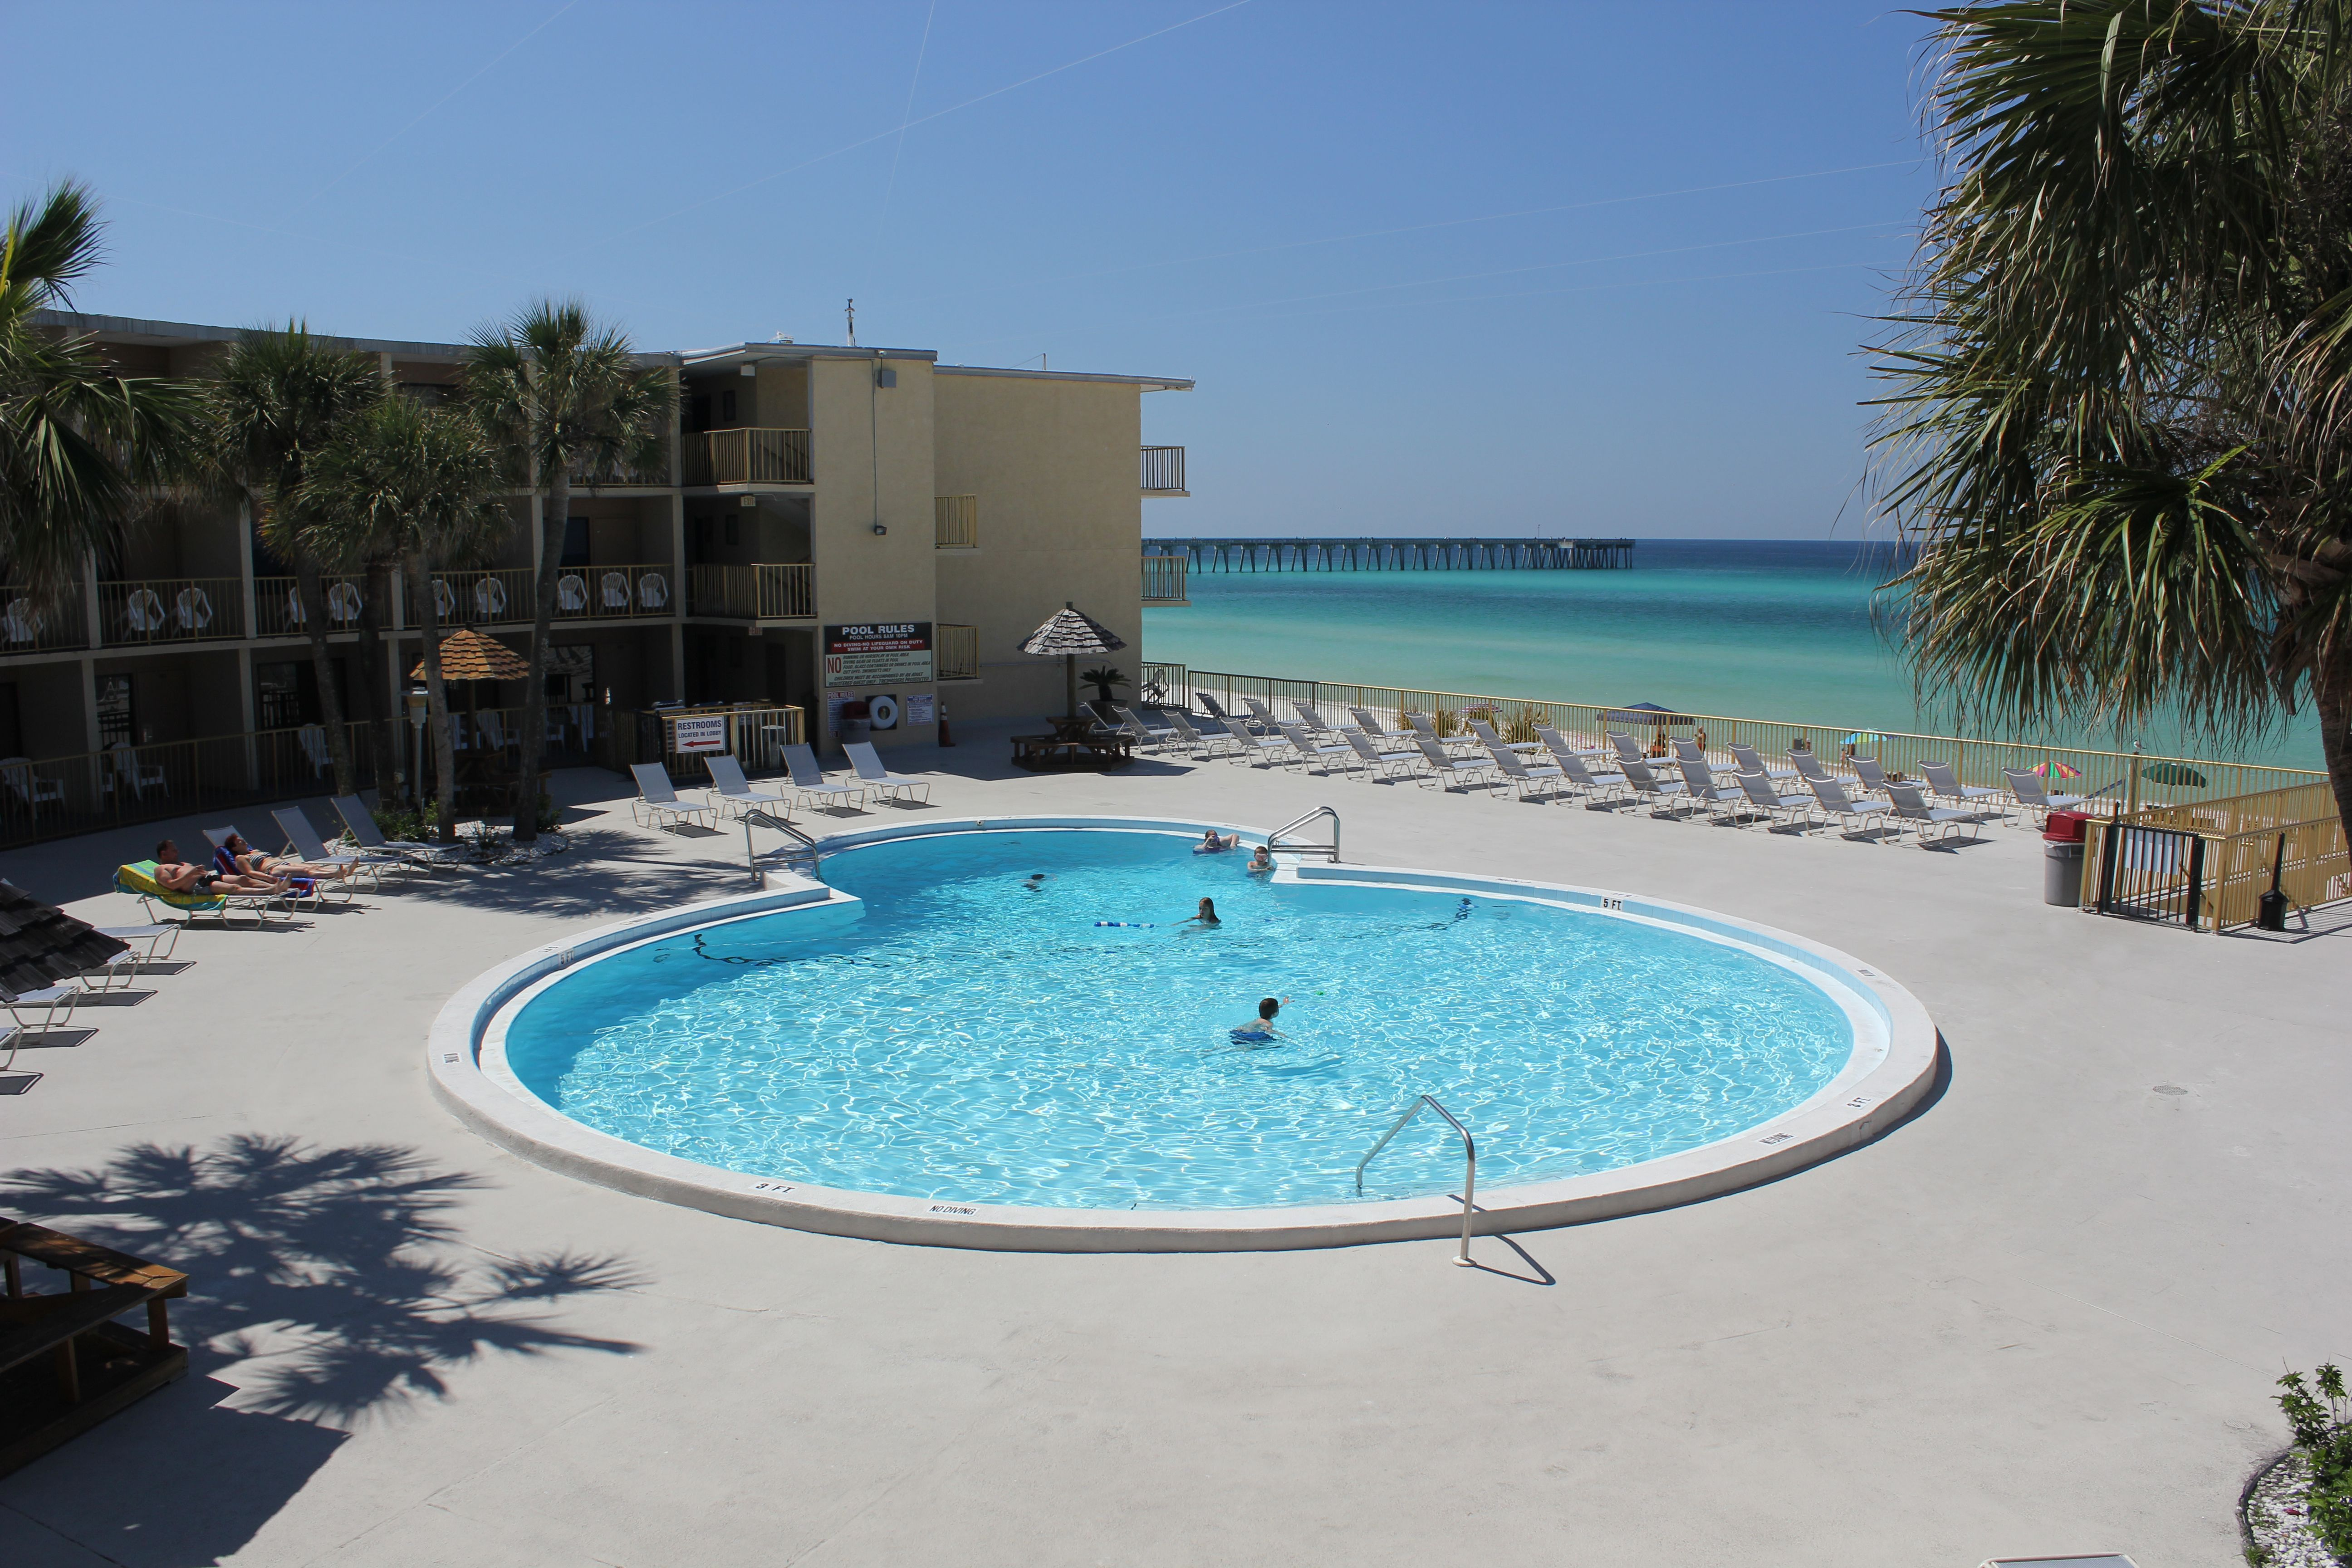 The Chateau At By The Sea Resorts Panama City Beach Hotels With Images Panama City Beach Hotels Panama City Panama Sea Resort